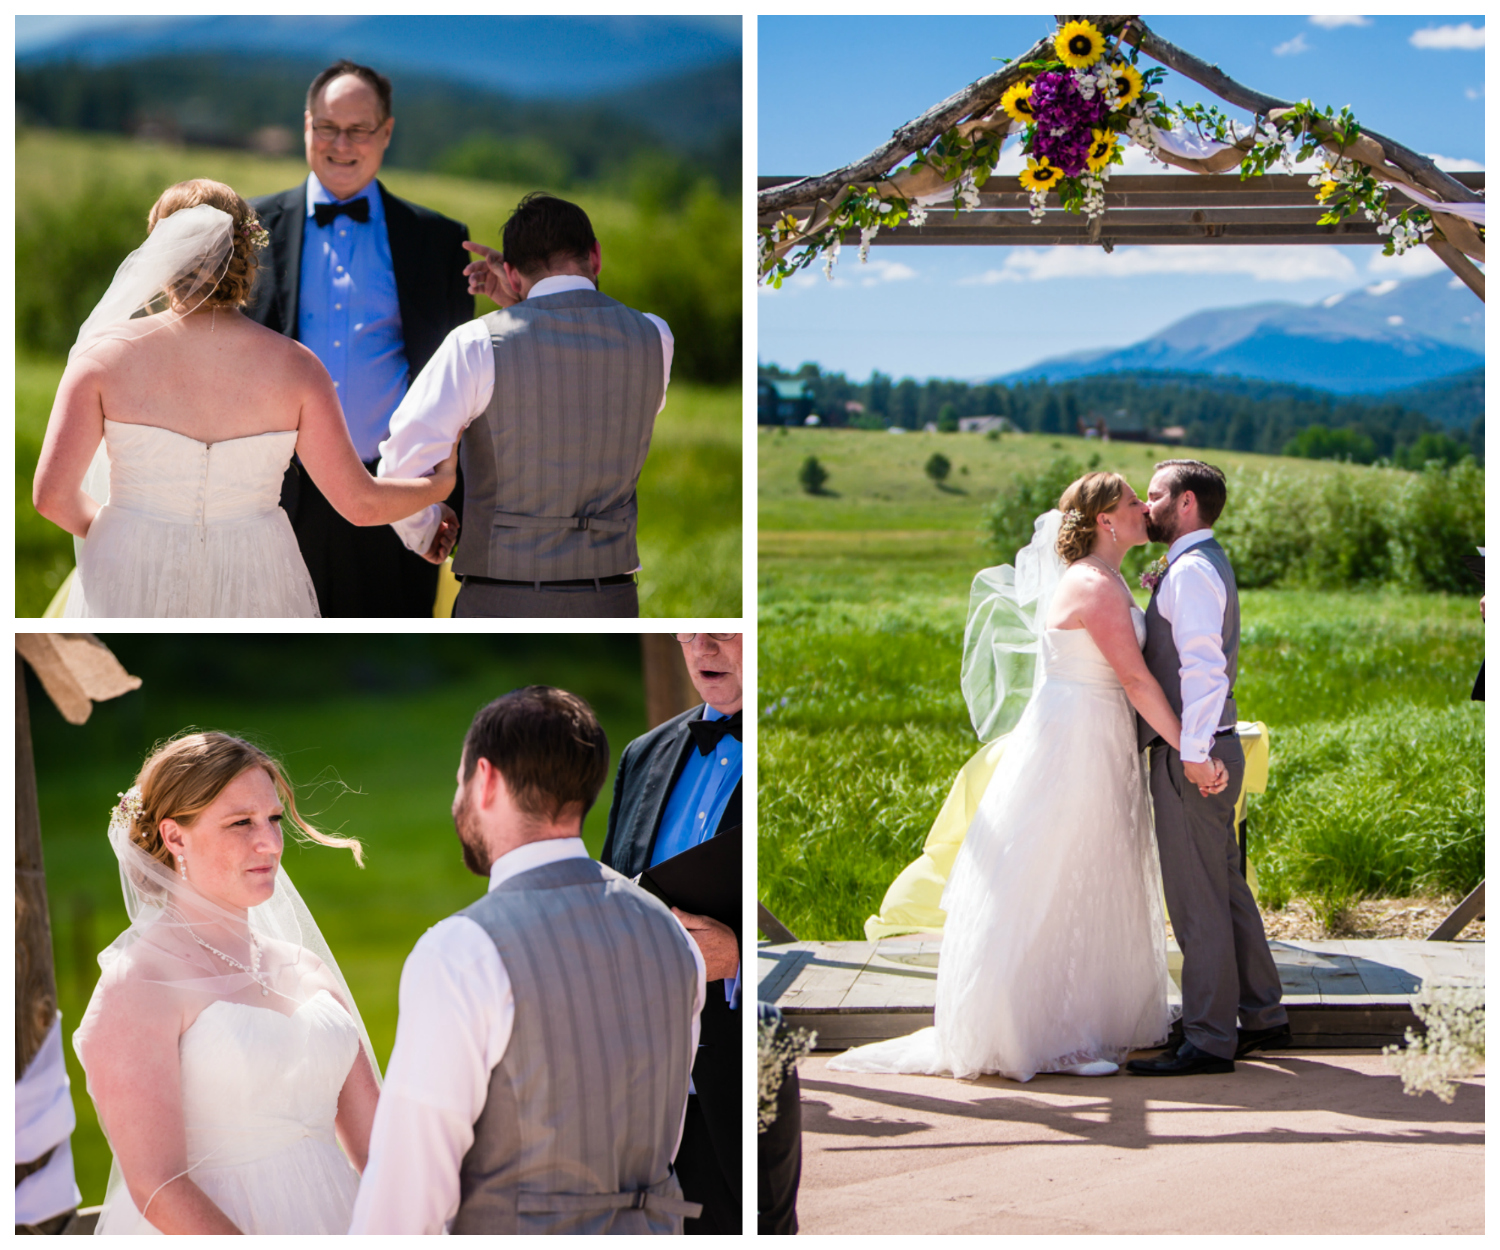 Deer Creek Valley Ranch Wedding. Photographed by JMGant Photography.